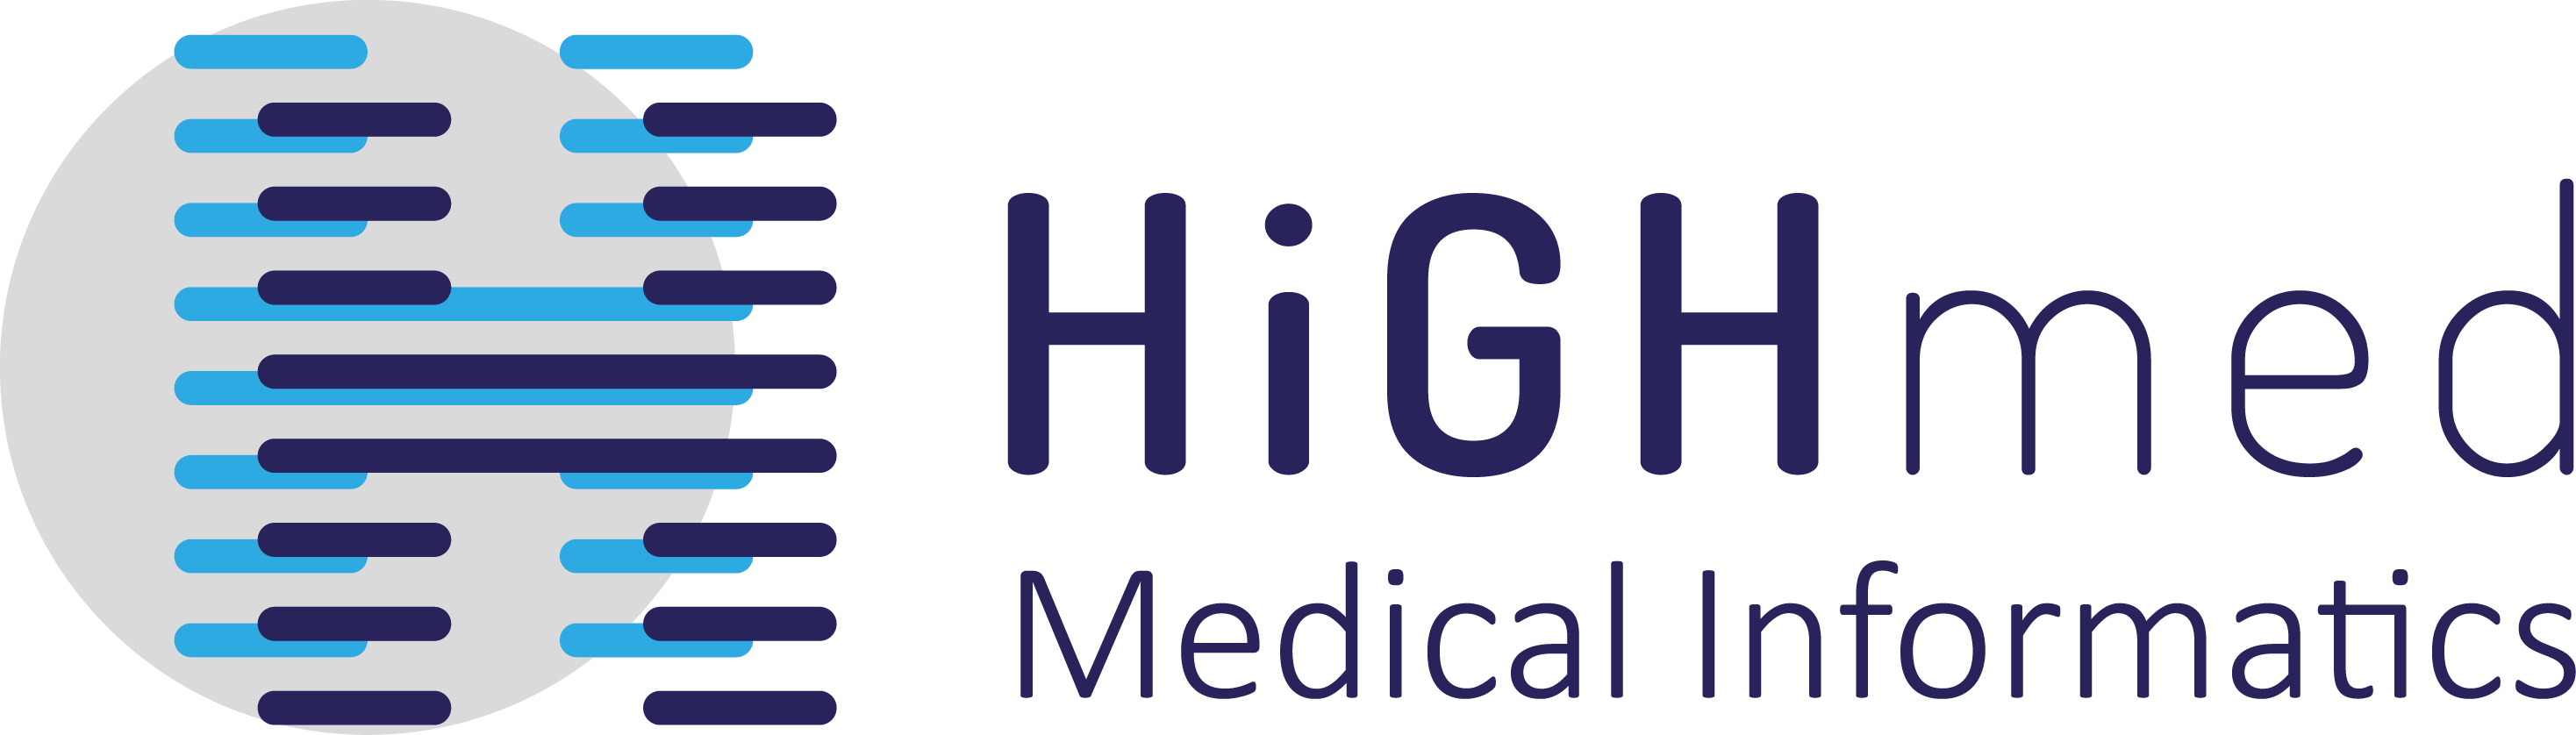 HiGHmed-logo_SB